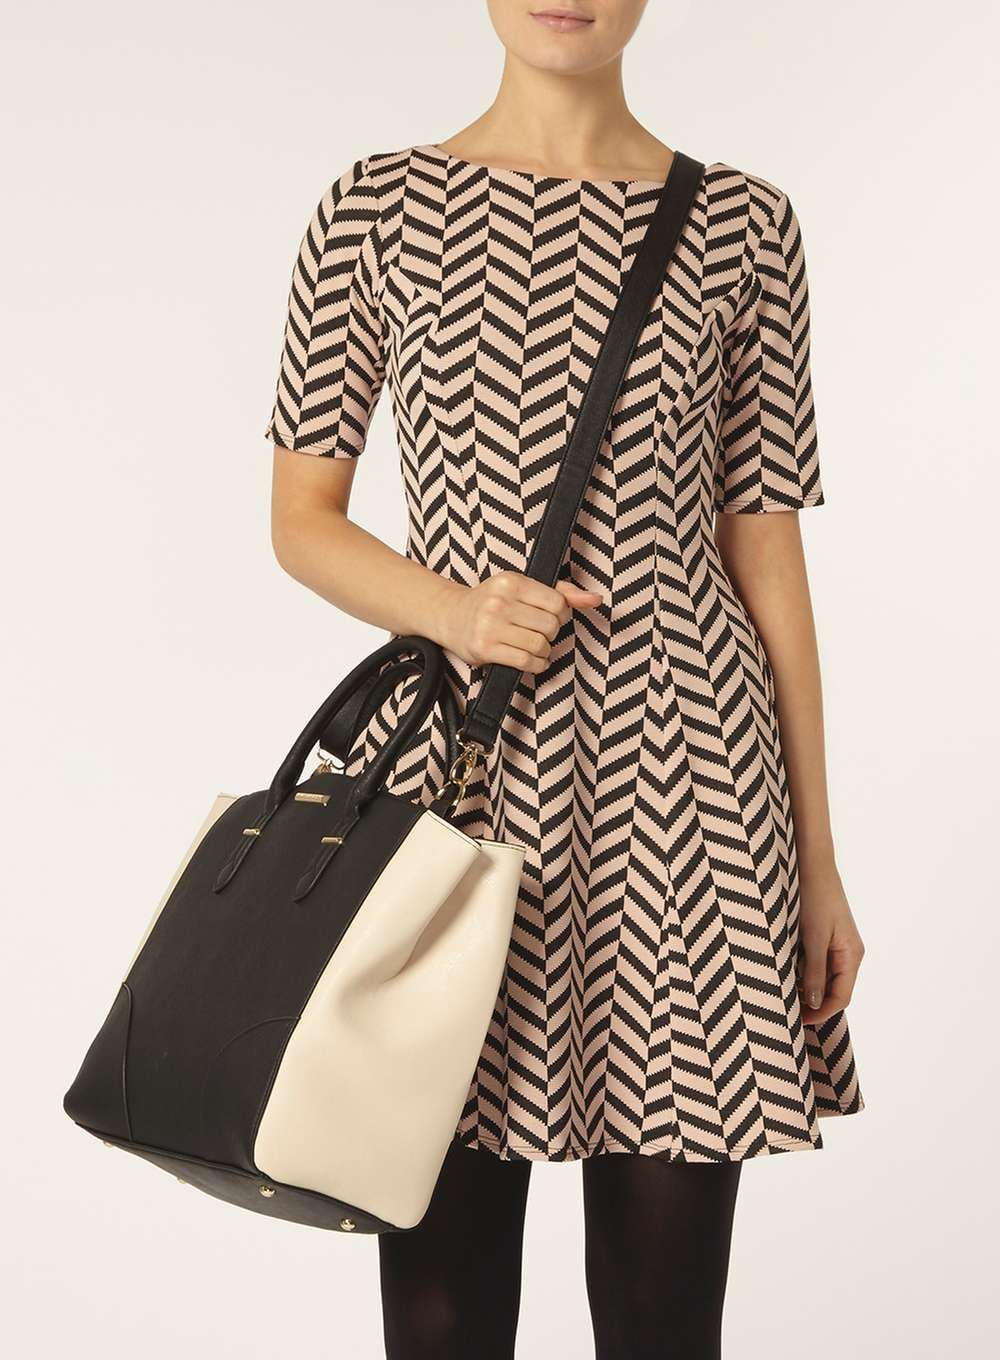 8510ade232f8 Lyst - Dorothy Perkins Black And Bone Oversized Tote Bag in Black